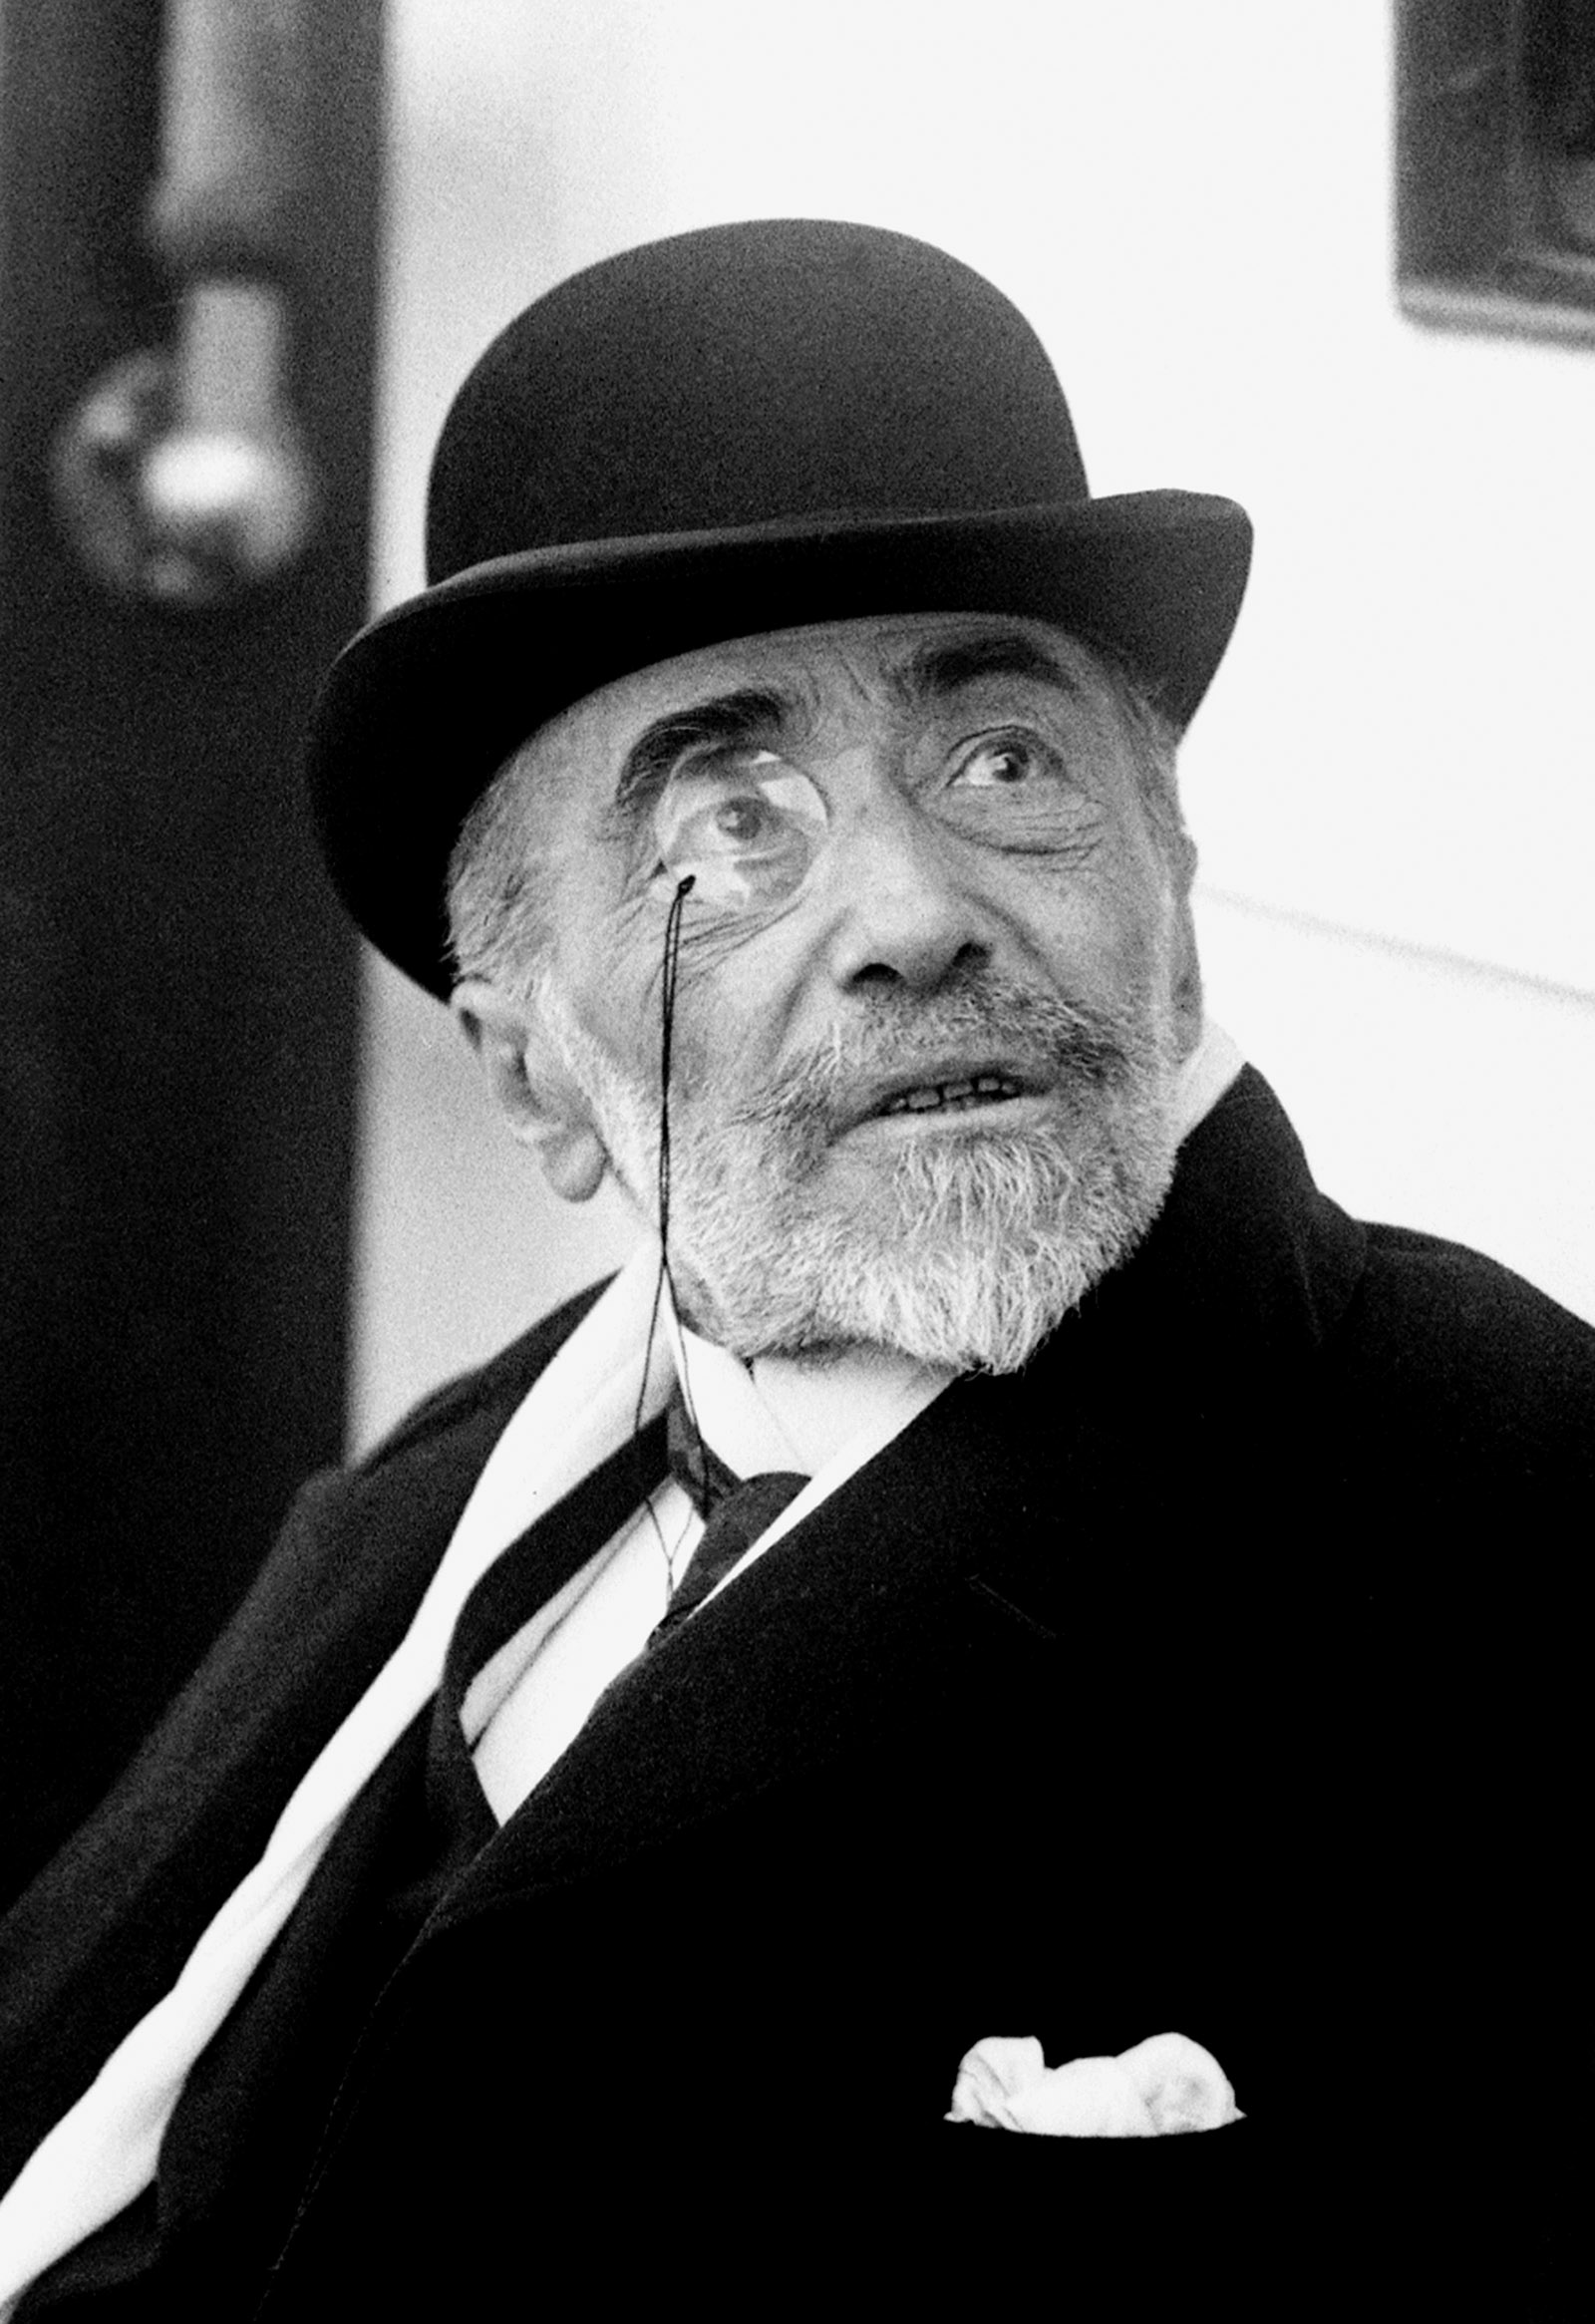 Joseph Conrad arriving in New York on the SS Tuscania, 1923